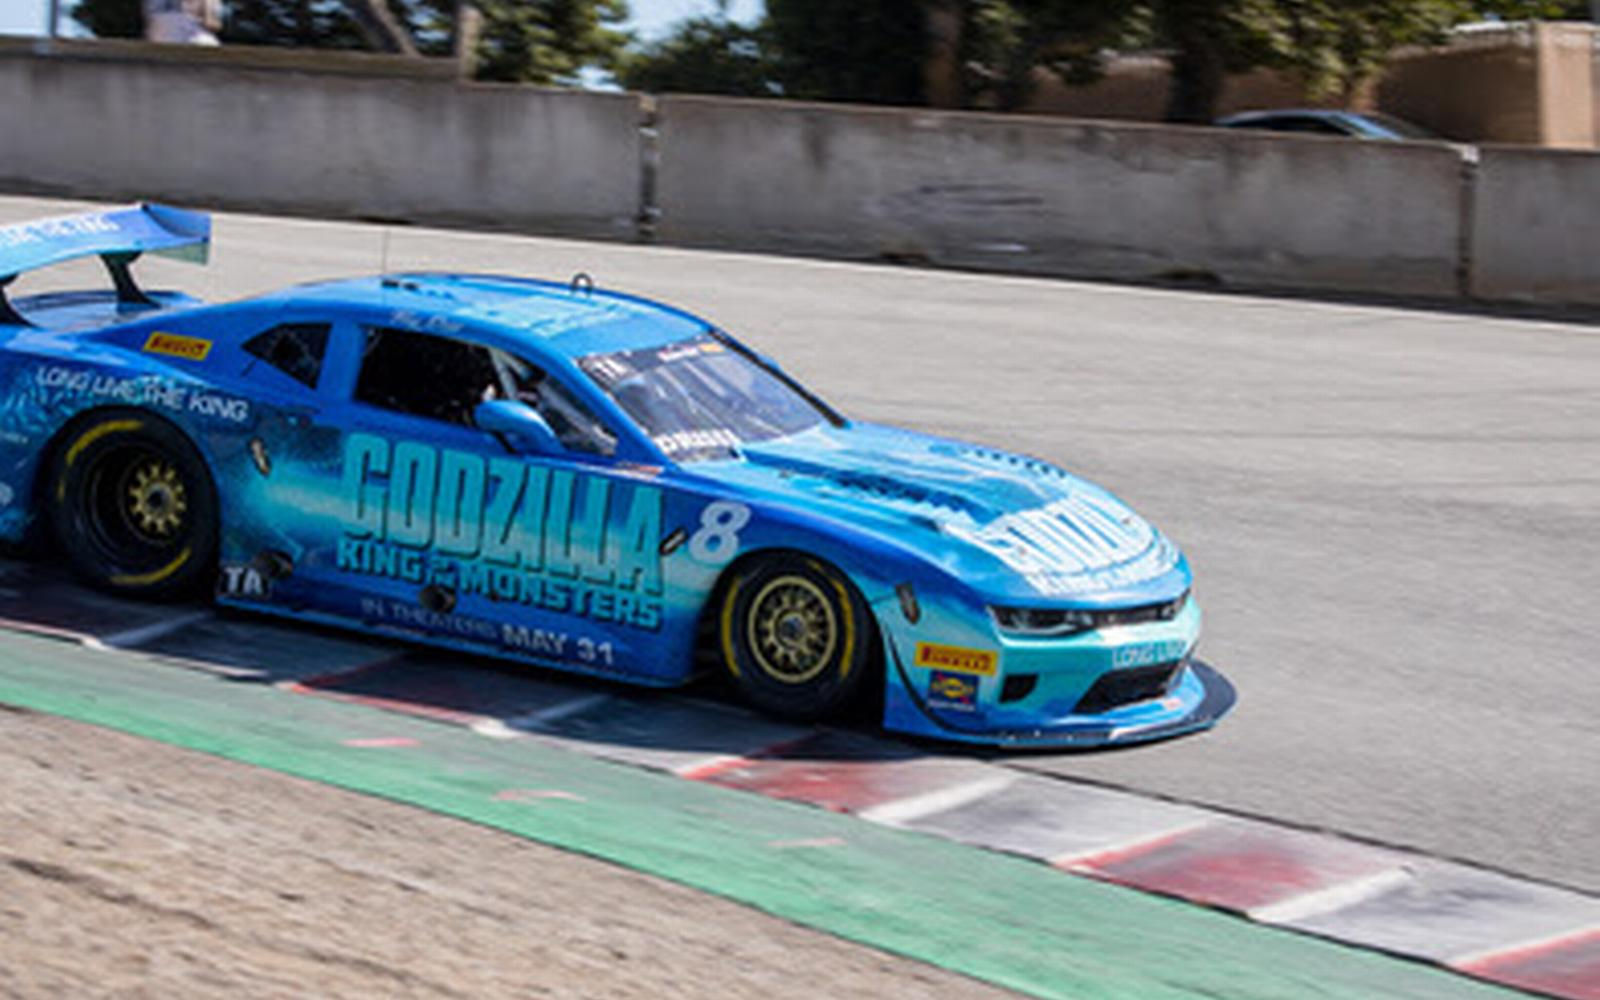 Godzilla 'King of the Monsters' Wows Laguna Seca Crowd as Drissi Claims Second Podium of the Season